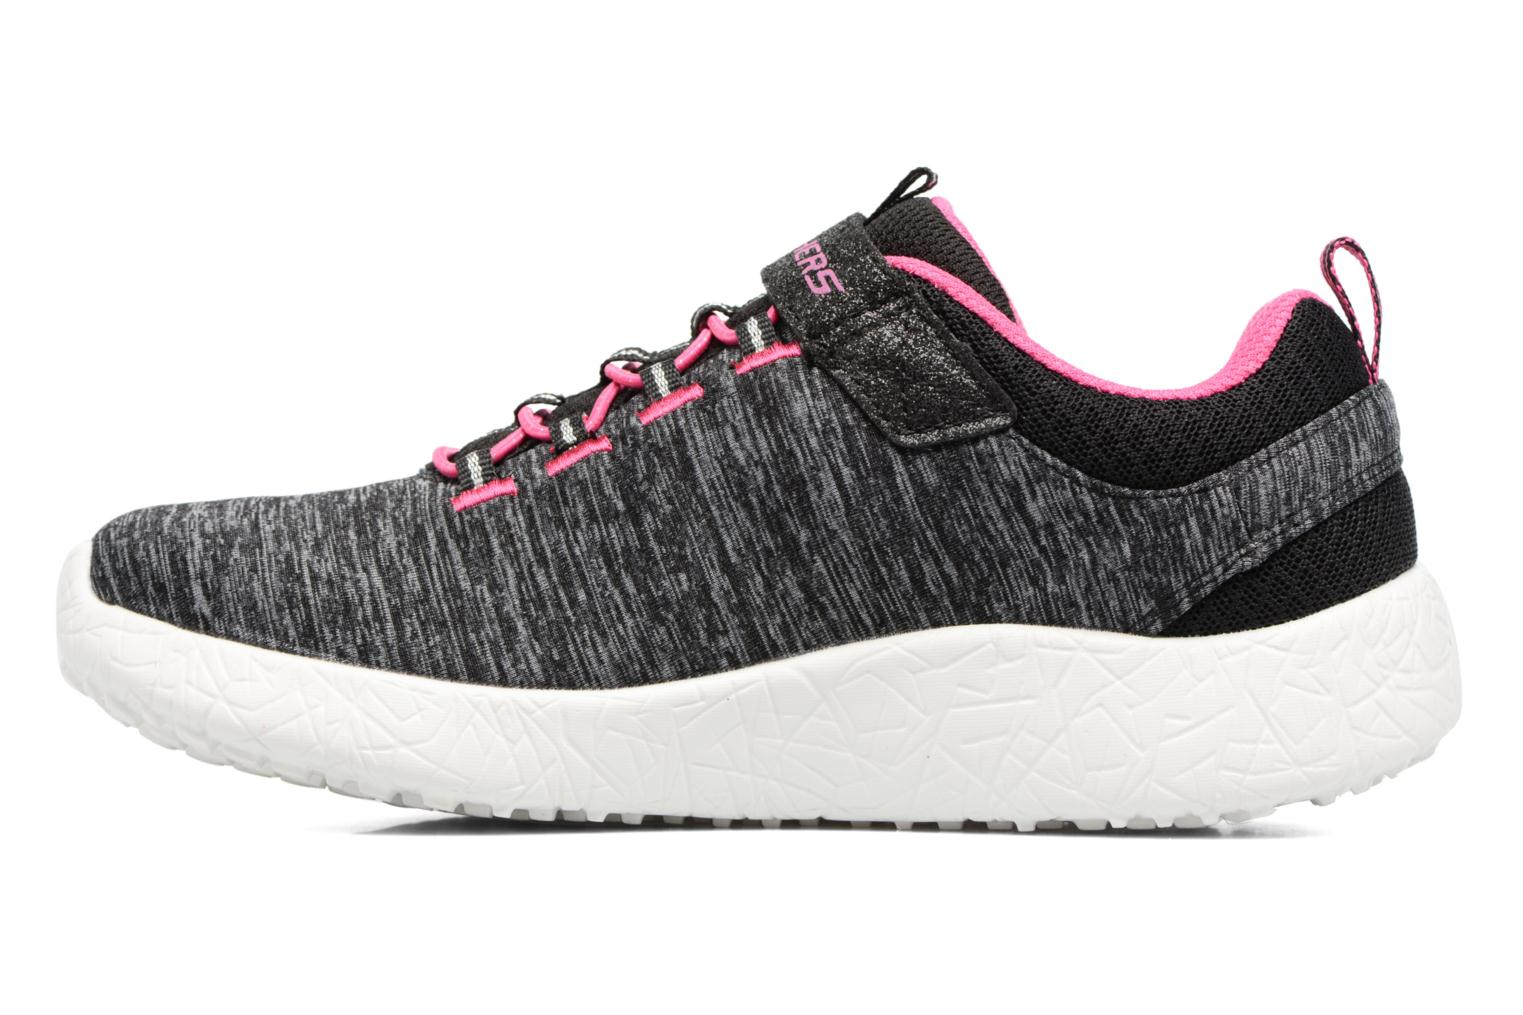 Burst Equinox Black/hot pink